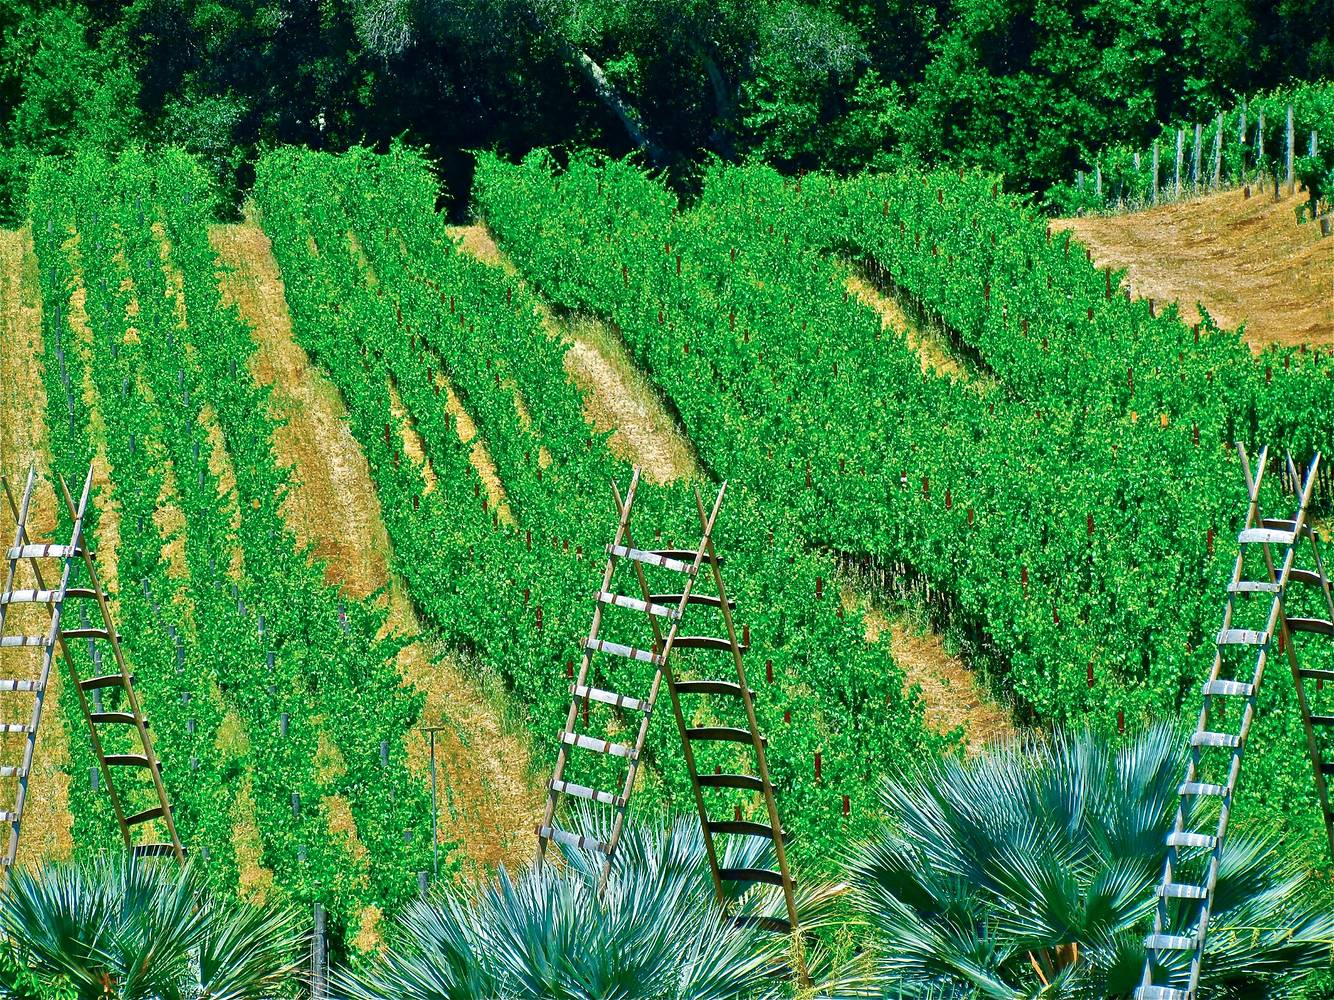 LADDERS AND VINES by Joeann Edmonds-Matthew